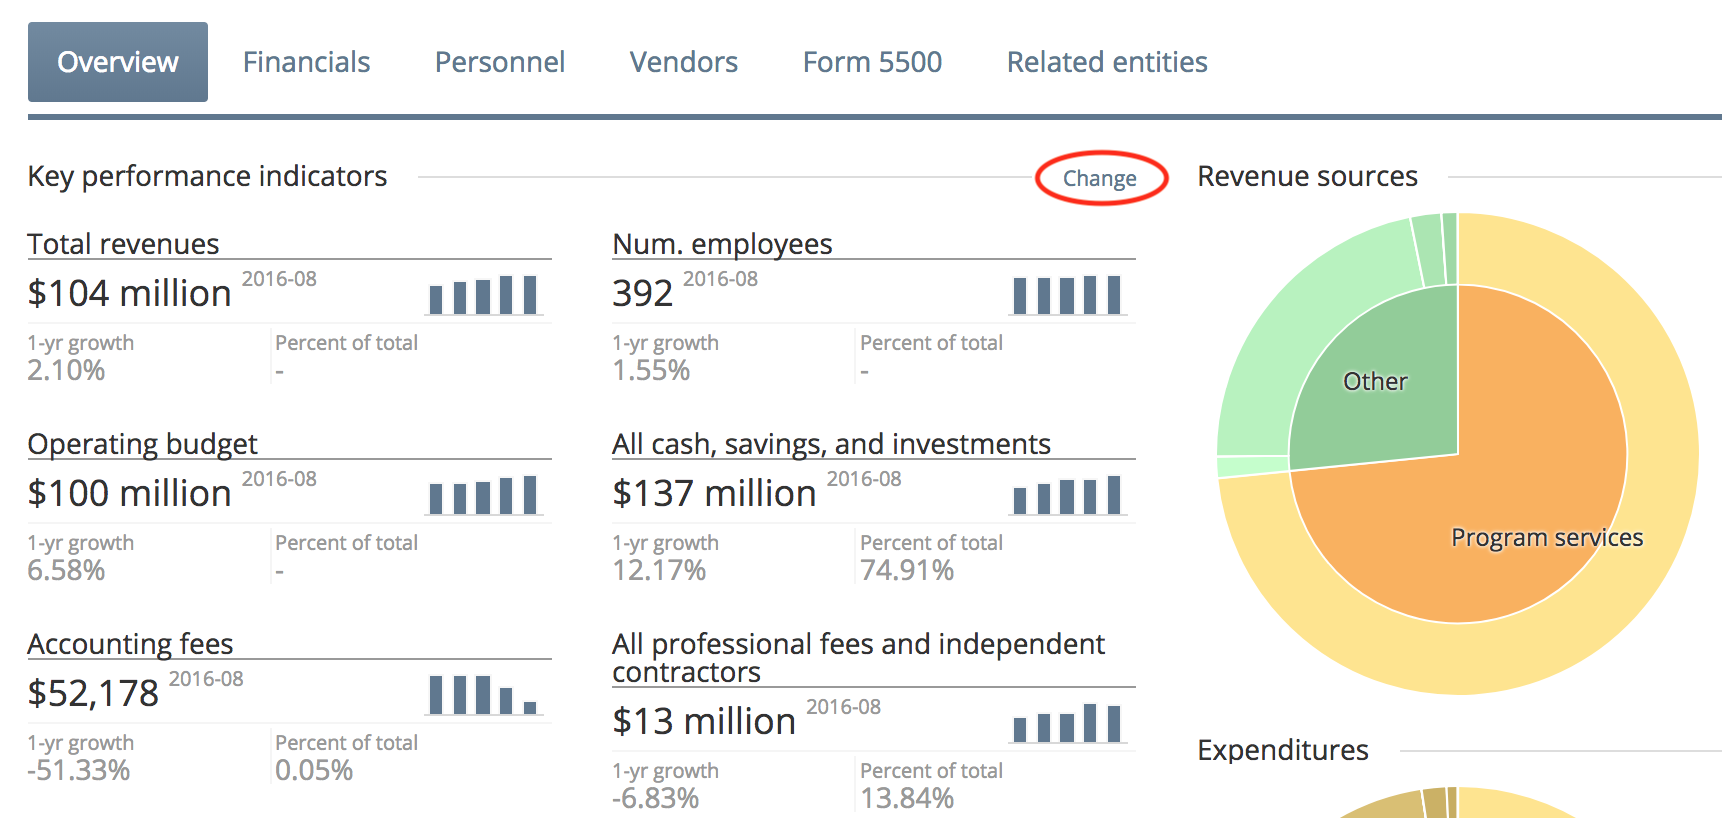 Customize the KPIs to quickly see the fields you care about